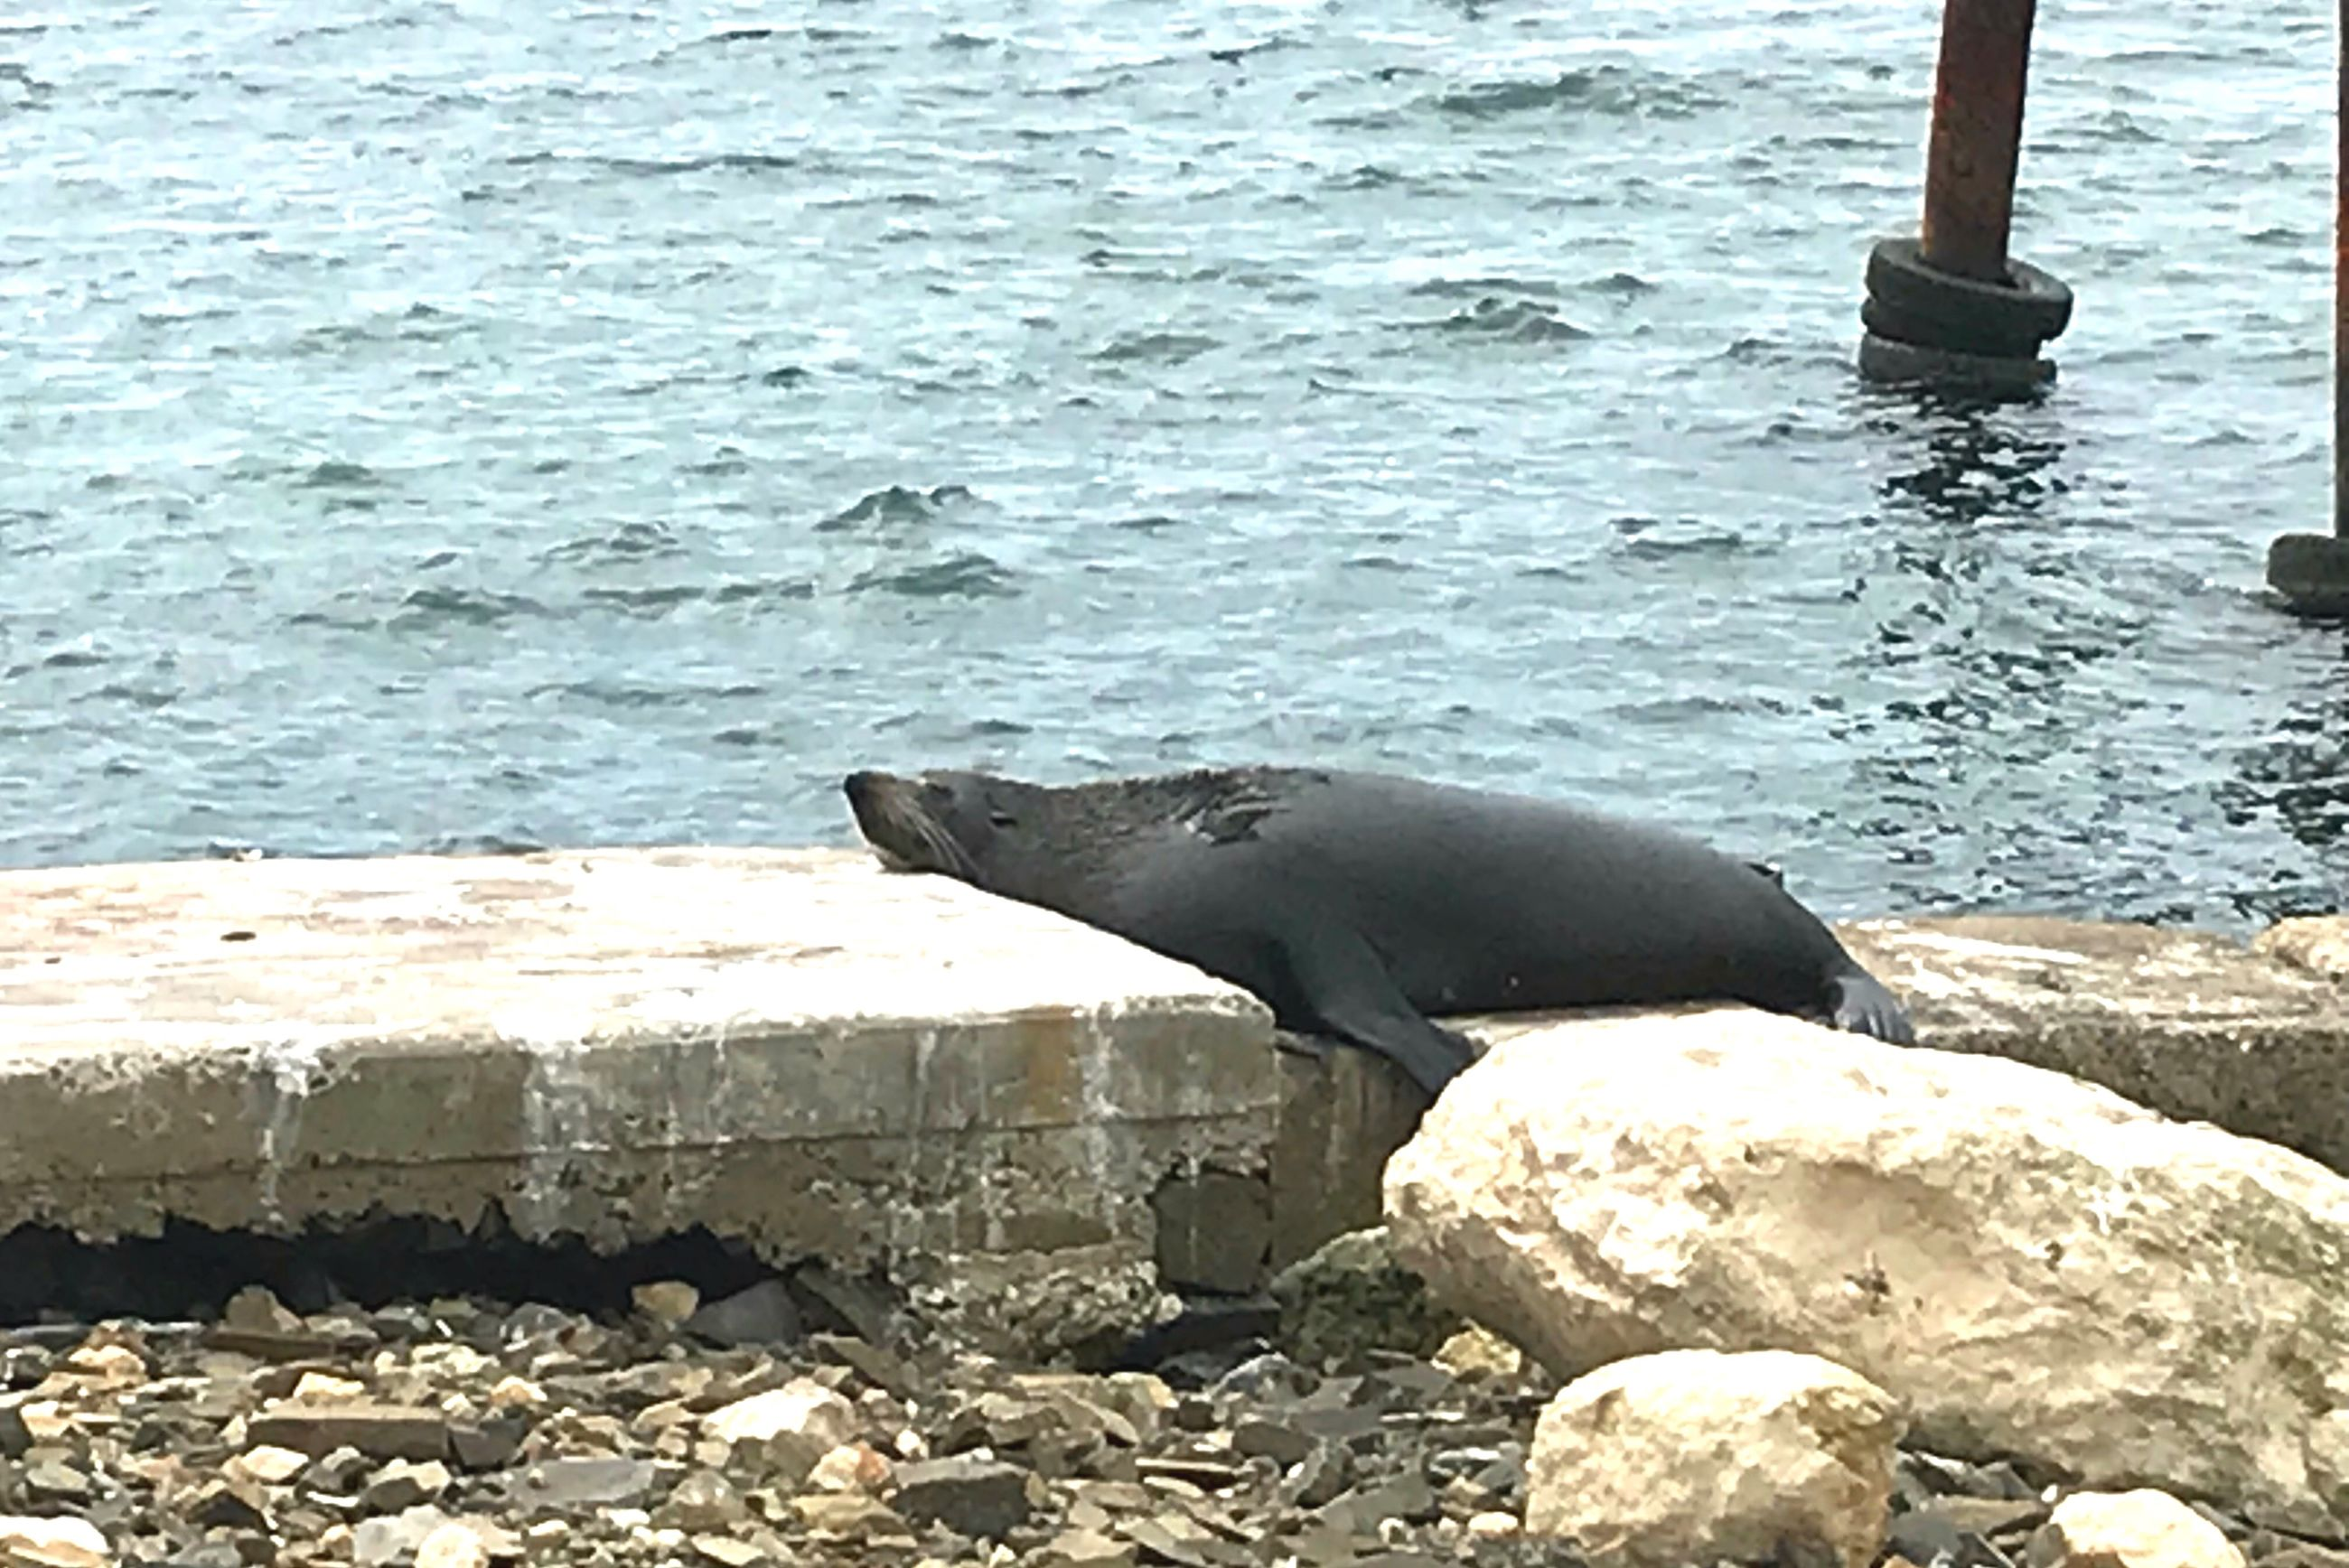 sea, water, one animal, animal themes, rock - object, day, no people, sea lion, outdoors, animals in the wild, nature, mammal, animal wildlife, aquatic mammal, close-up, sea life